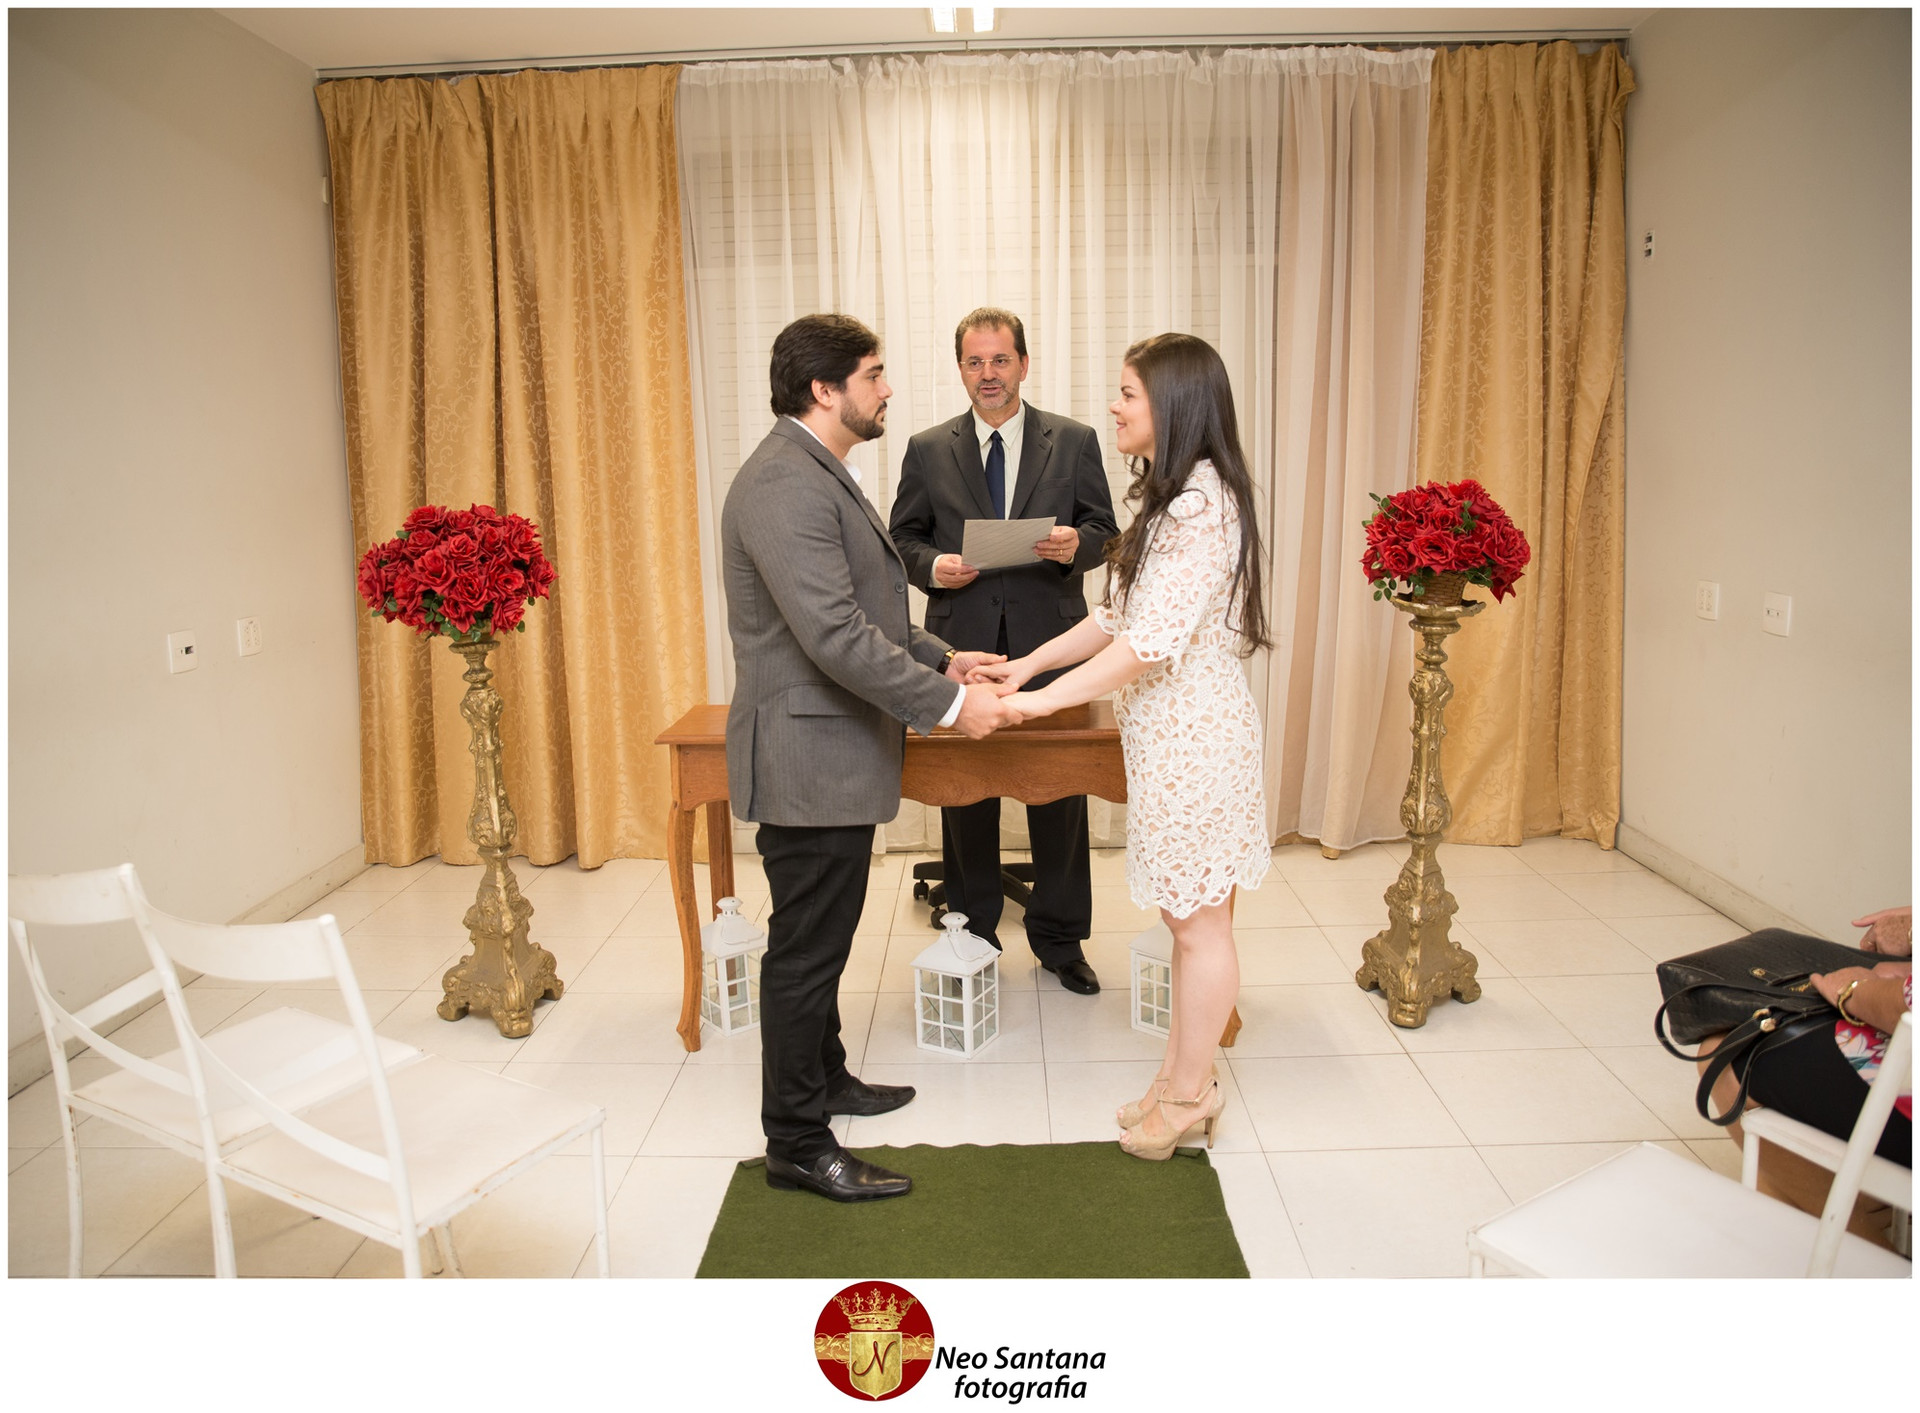 Fotos do Casamento Civil de Marcos e Gardênia